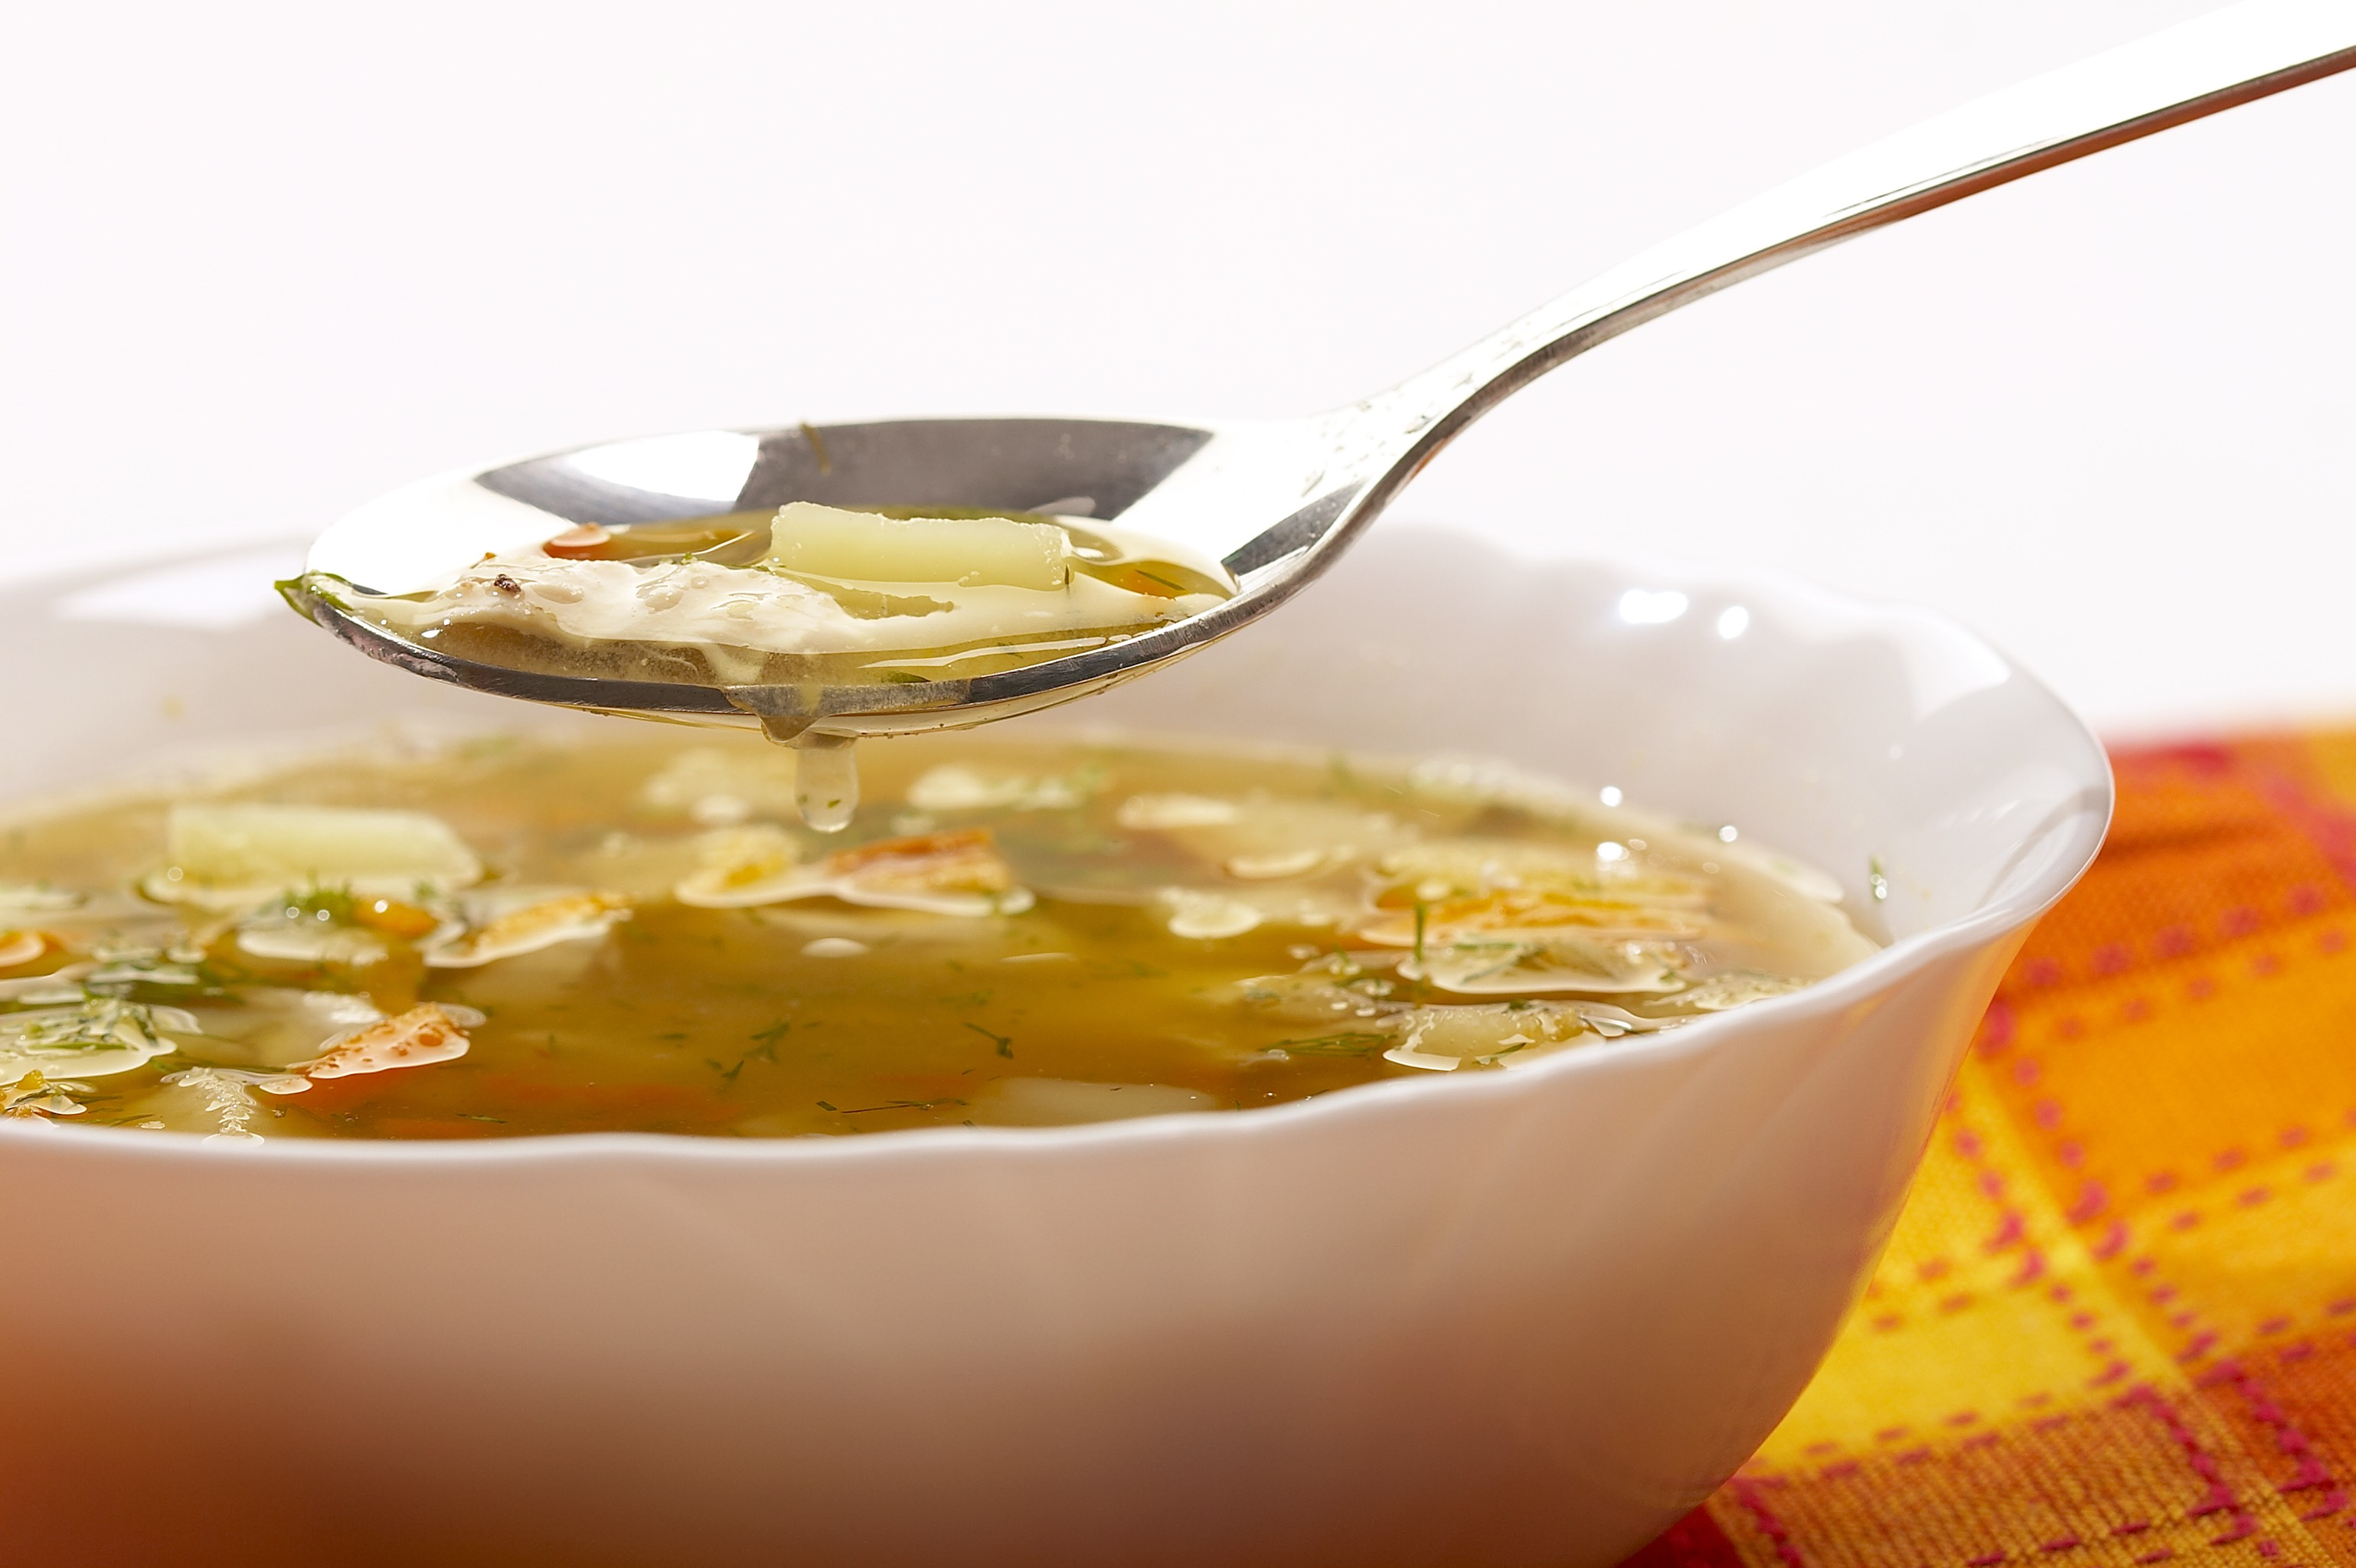 20-Minute Vegetable Soup